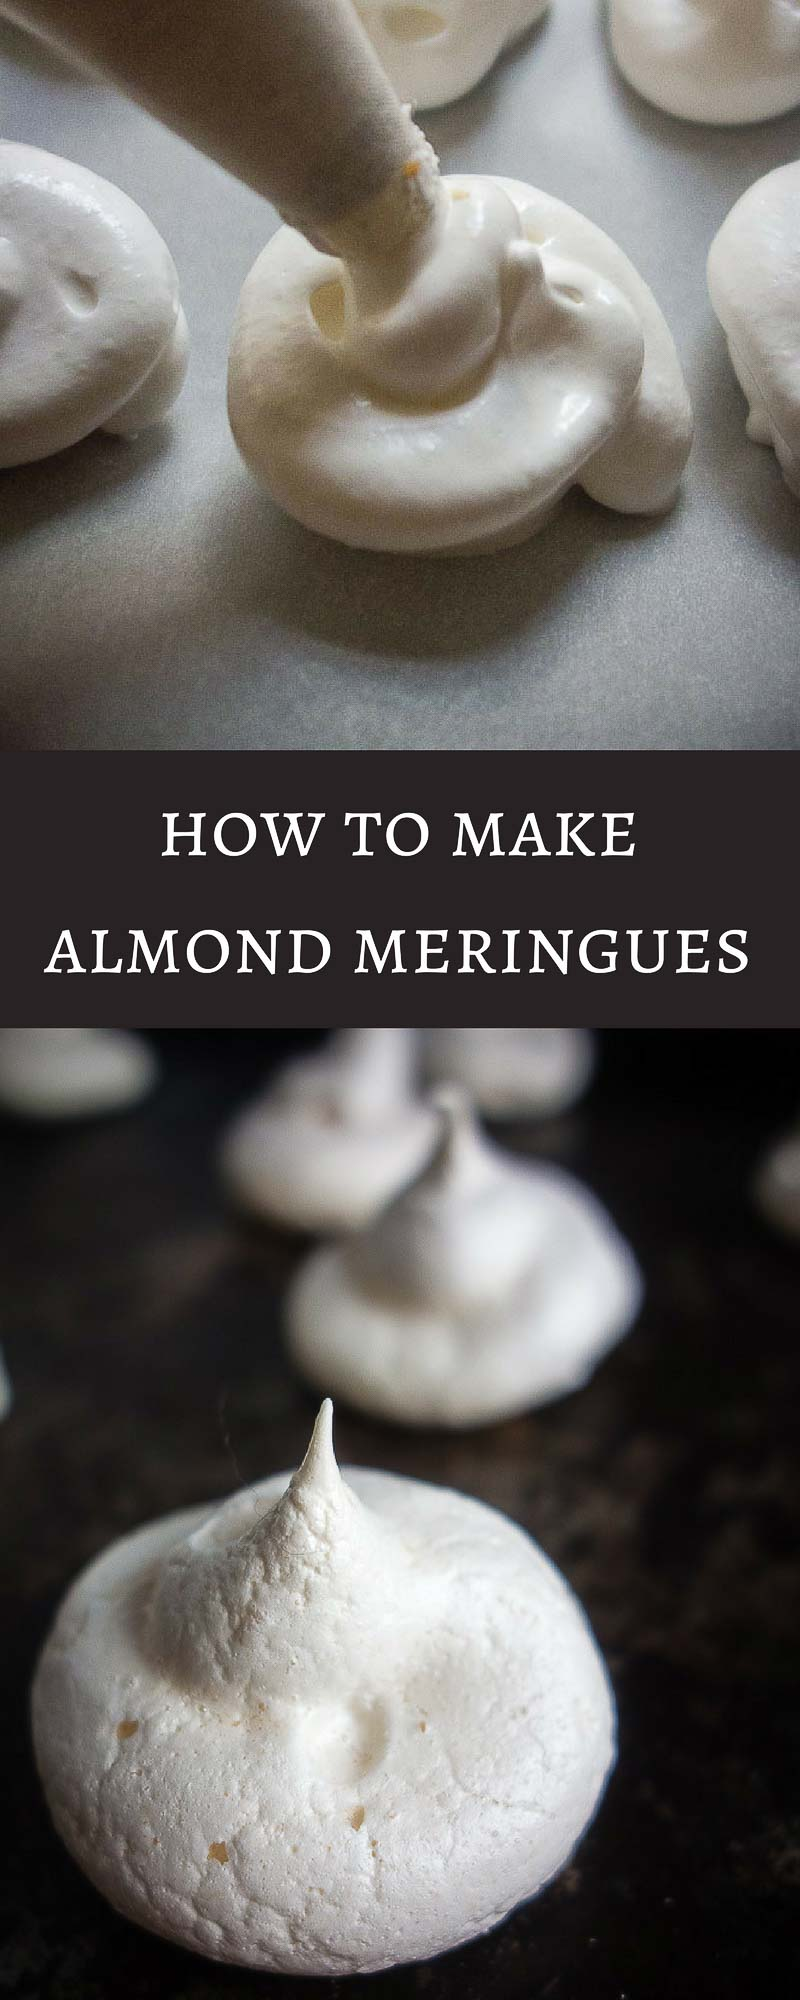 If you're intimidated by making meringues, don't be! Learn how to make these super easy Almond Meringues...light and crisp on the outside, with a slightly chewy center, these sweet little morsels of goodness are super addictive!meringue cookies | french meringue | meringue kisses | easy meringue | egg white recipes | almond desserts | french desserts | french cookies | macarons | almond macarons | meringue dessert | best meringue recipe | best almond meringues